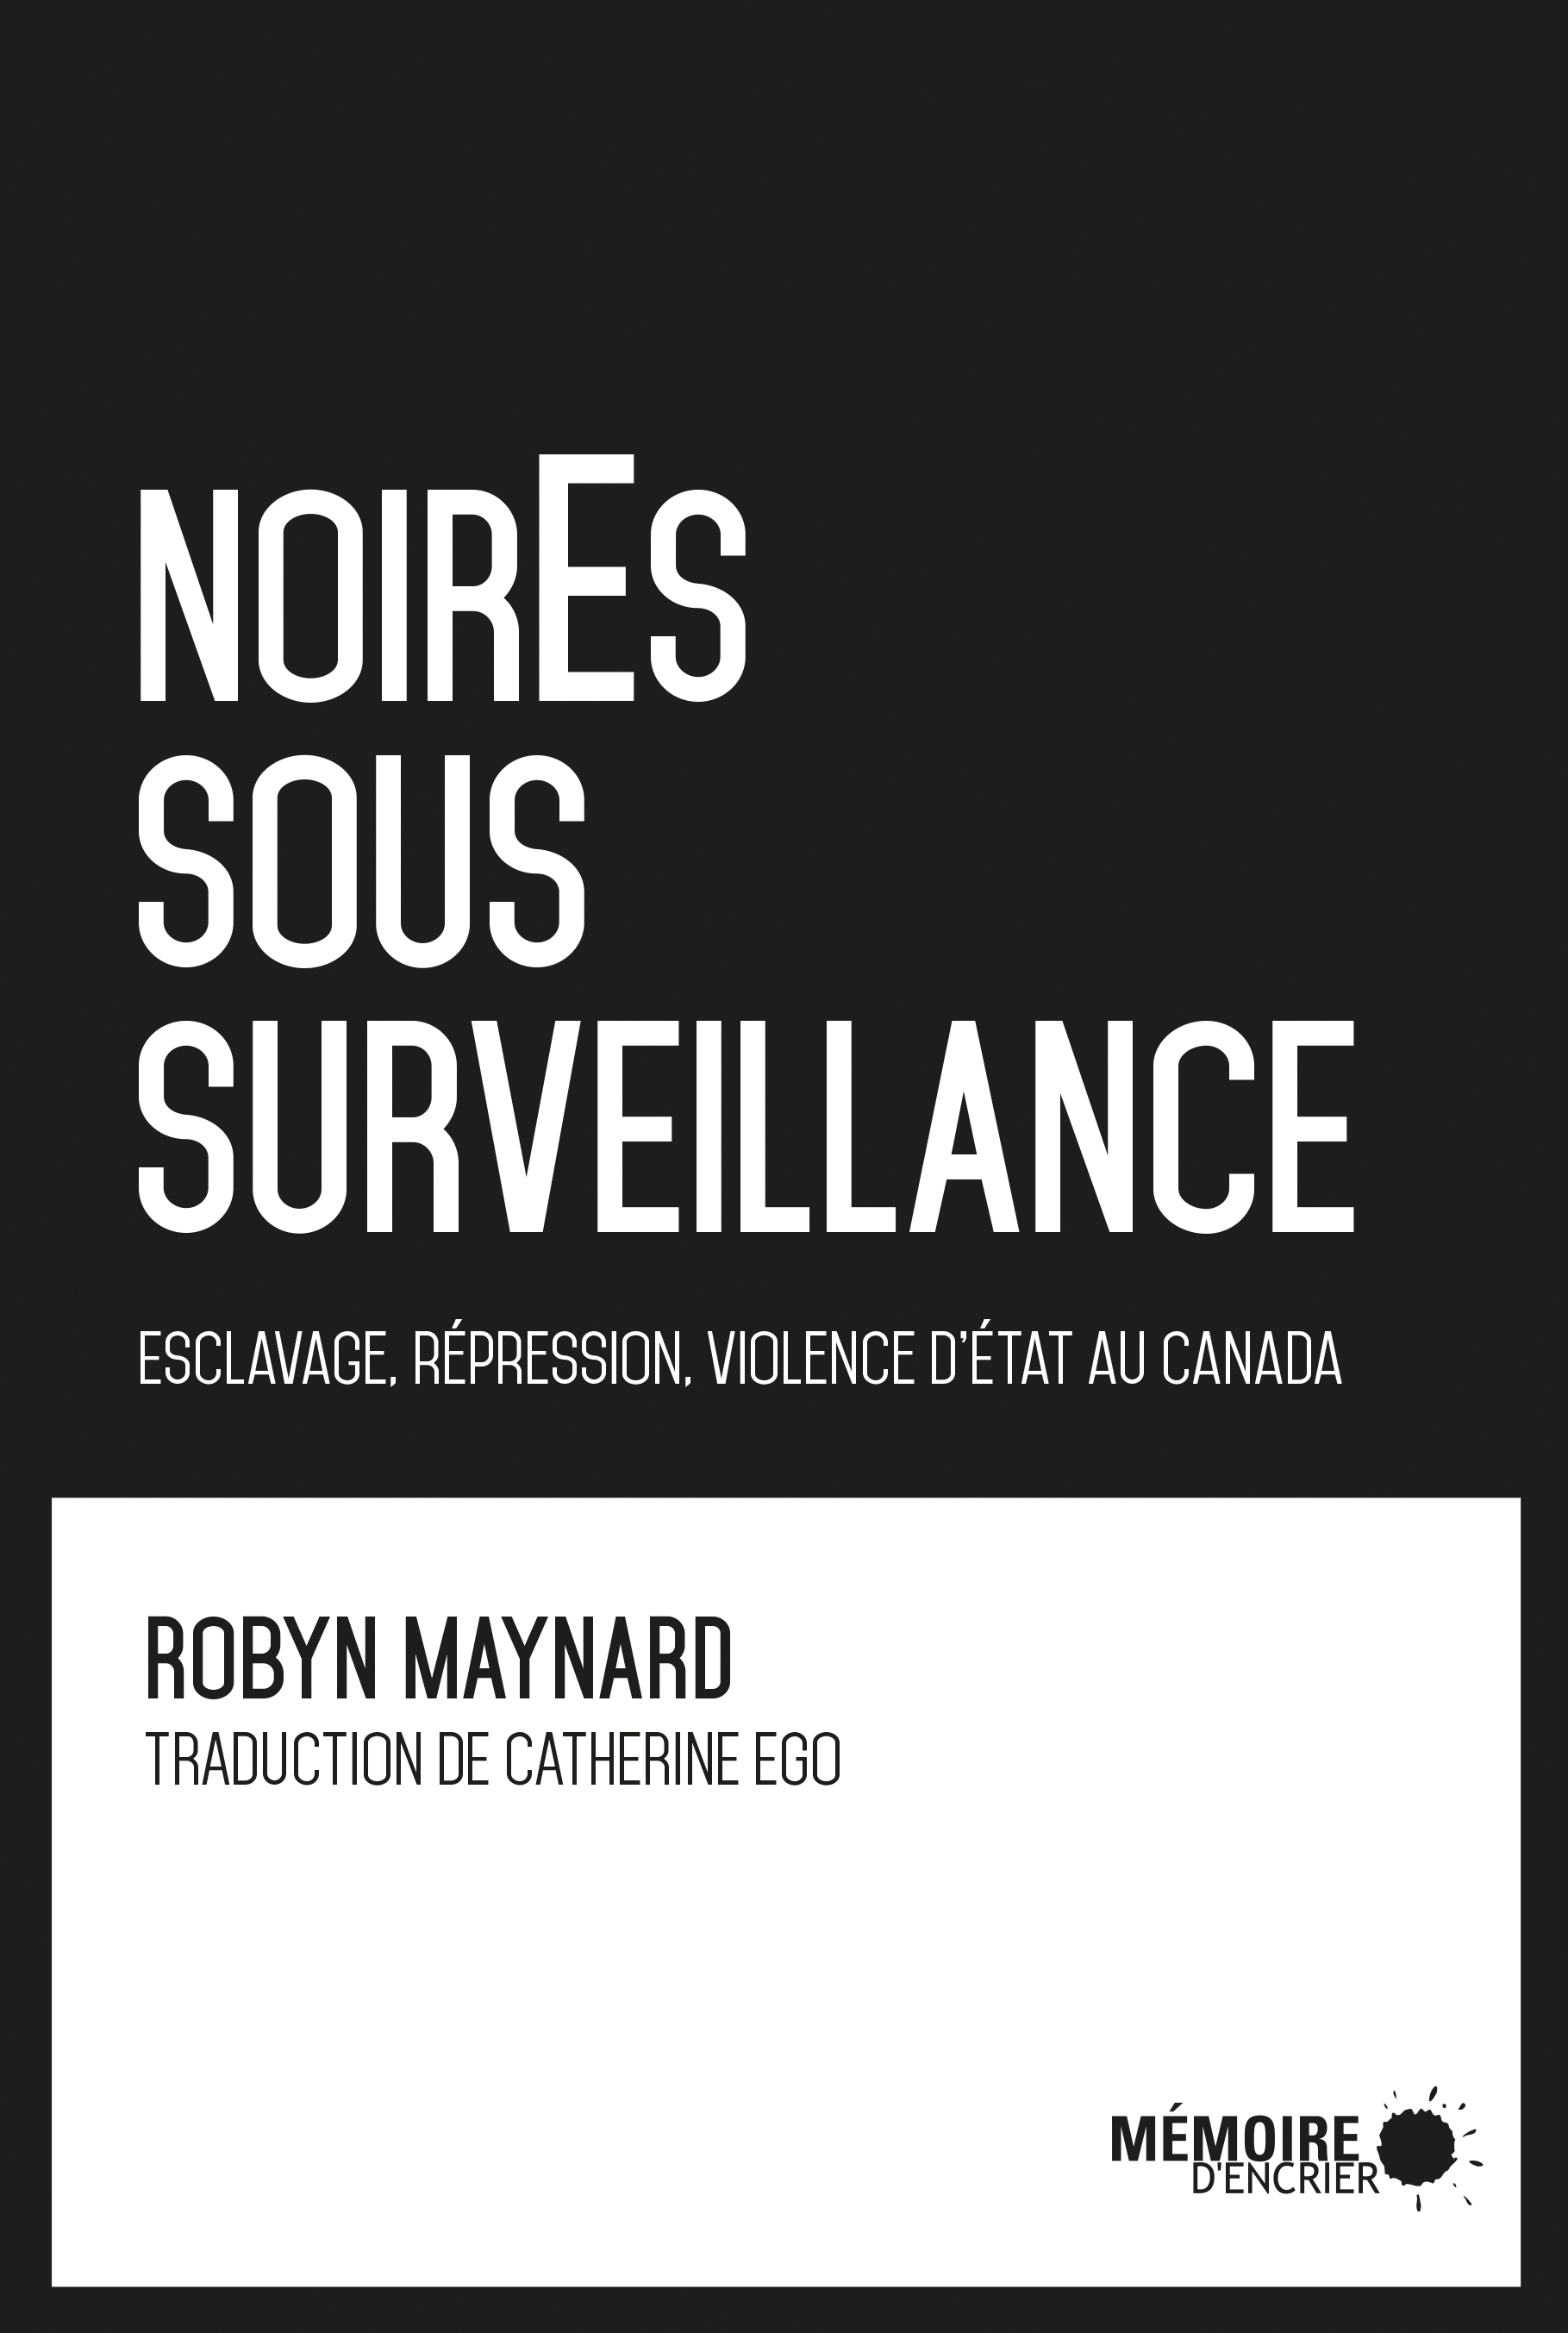 Delving behind Canada's veneer of multiculturalism and tolerance, Policing Black Lives traces the violent realities of anti-blackness from the slave ships to prisons, classrooms and beyond. Robyn Maynard provides readers with the first comprehensive account of nearly four hundred years of state-sanctioned surveillance, criminalization and punishment of Black lives in Canada.